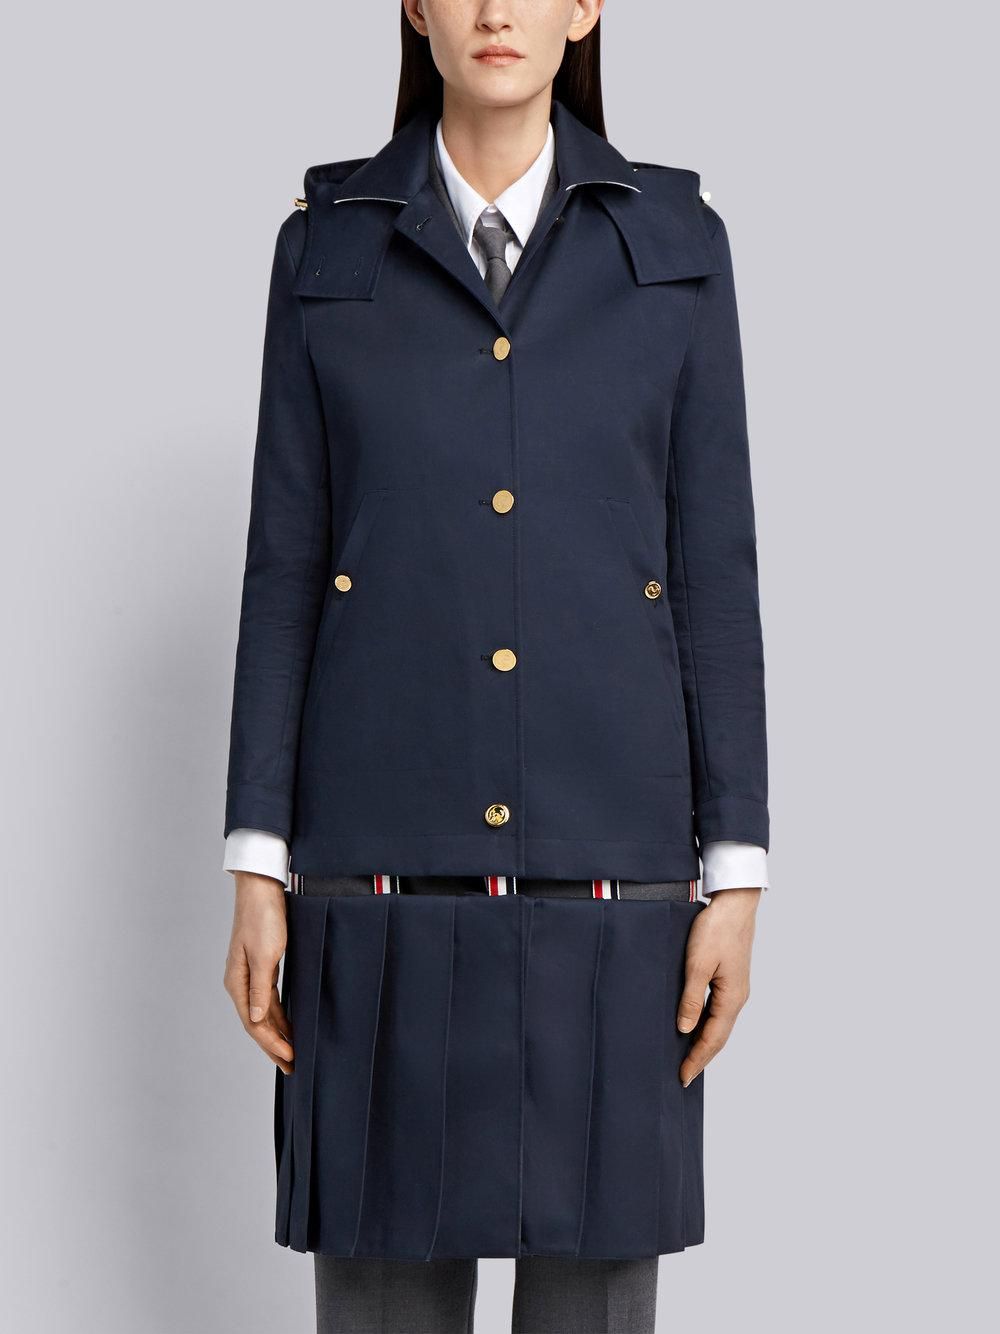 Low Slung-Pleated Bal Collar Overcoat In Mackintosh - Blue Thom Browne joanKh